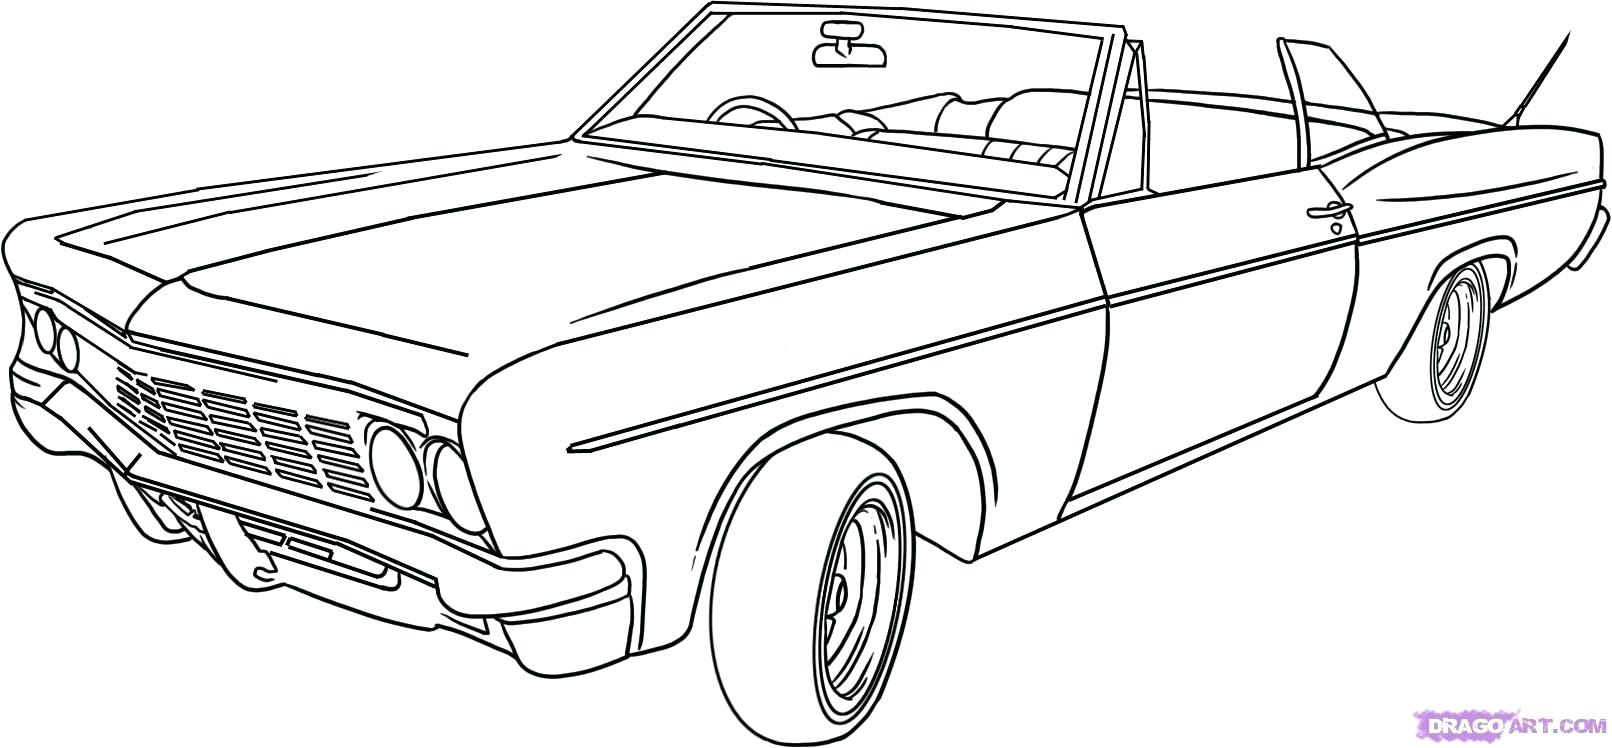 1612x748 Old Cars Coloring Pages. Car Coloring Pages To Print For Car Sport